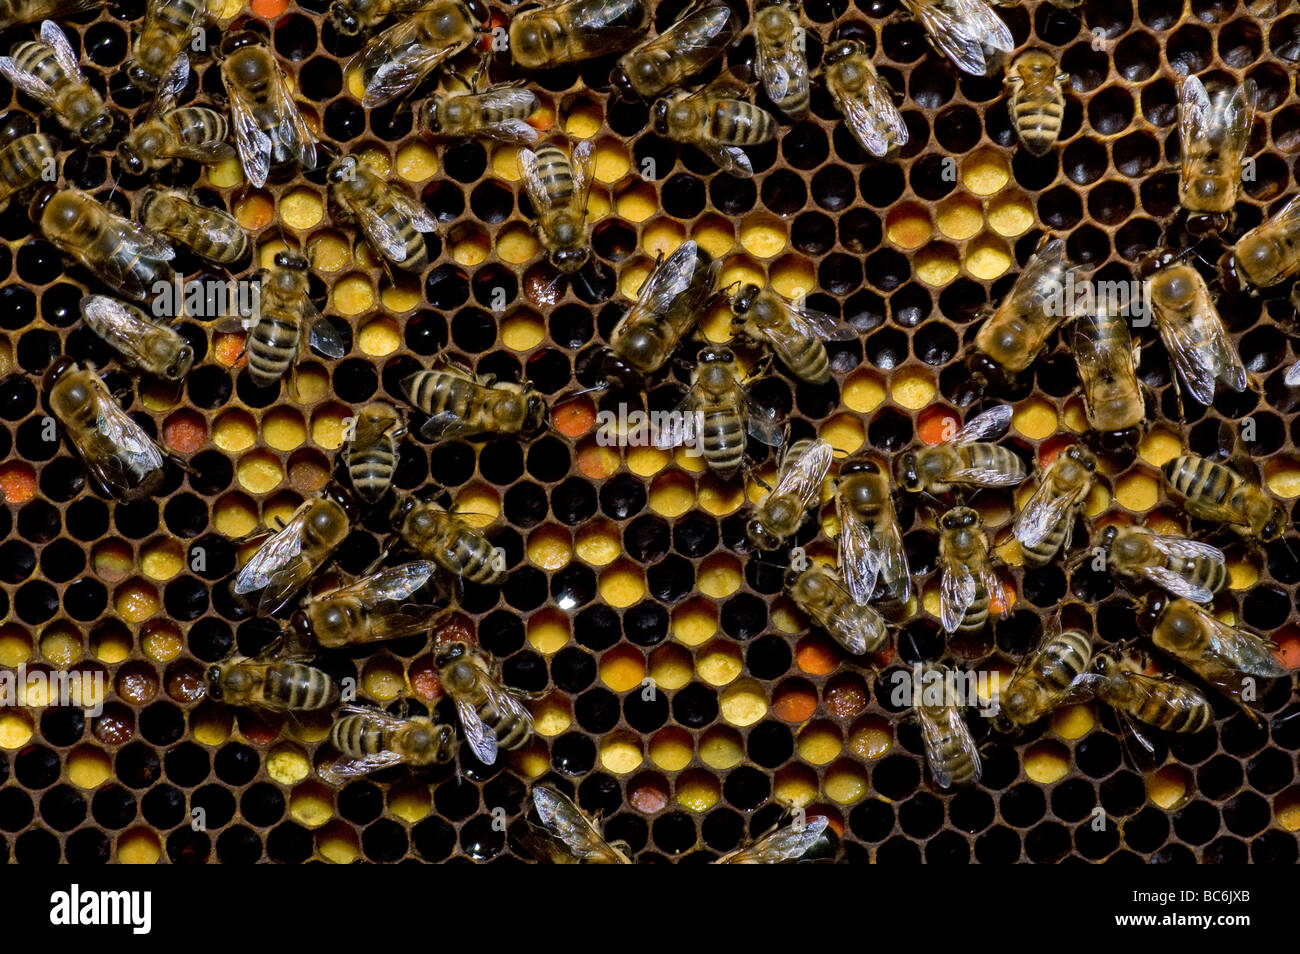 Many bees working on honeycombs full of honey and pollen - Stock Image